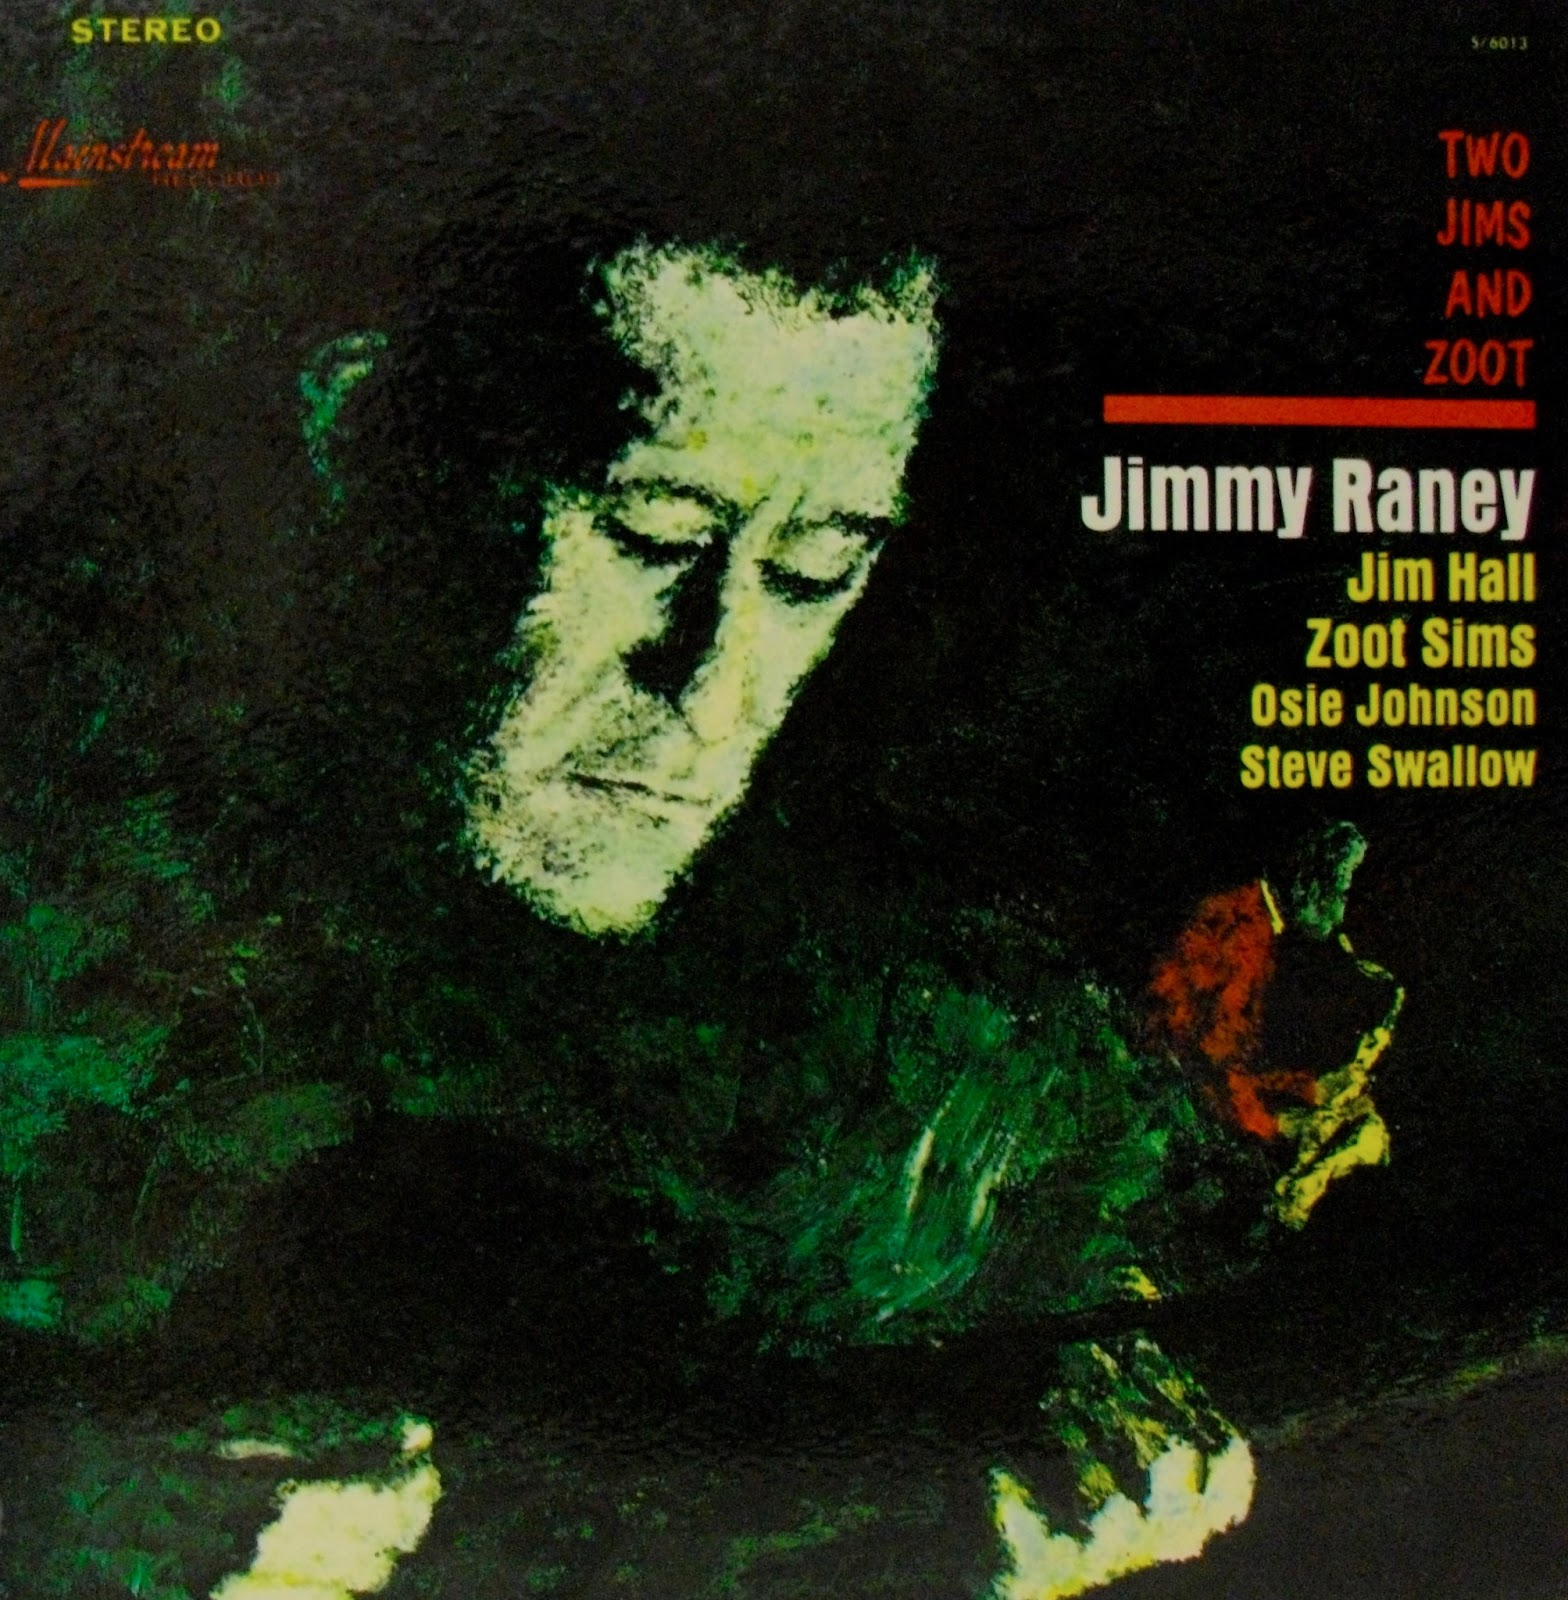 Jimmy Raney Two Jims And Zoot